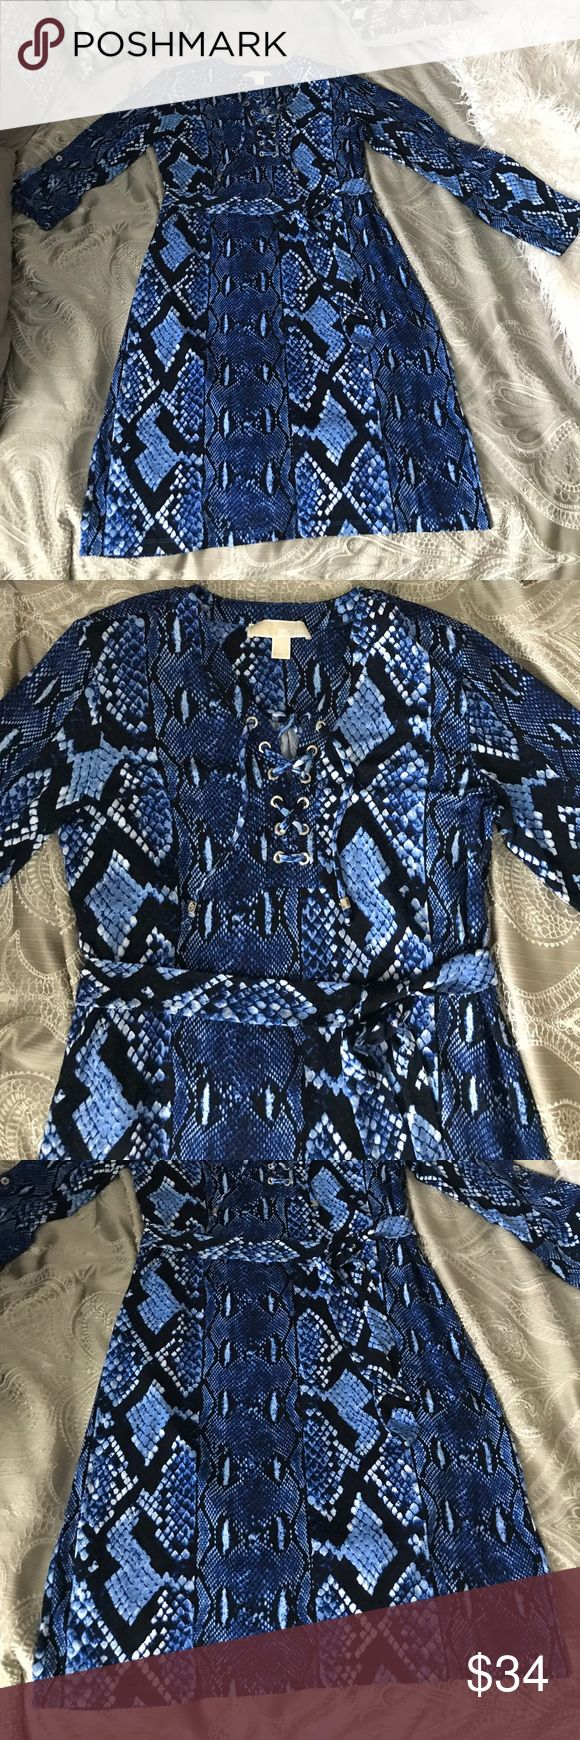 Michael Kors Blue Navy Snake print dress Sz Small Really beautiful Michael Kors Snake print dress navy blue with other vibrant colors of blue really pretty on! Please share my closet and make me an offer! Thanks! Michael Kors Dresses Midi